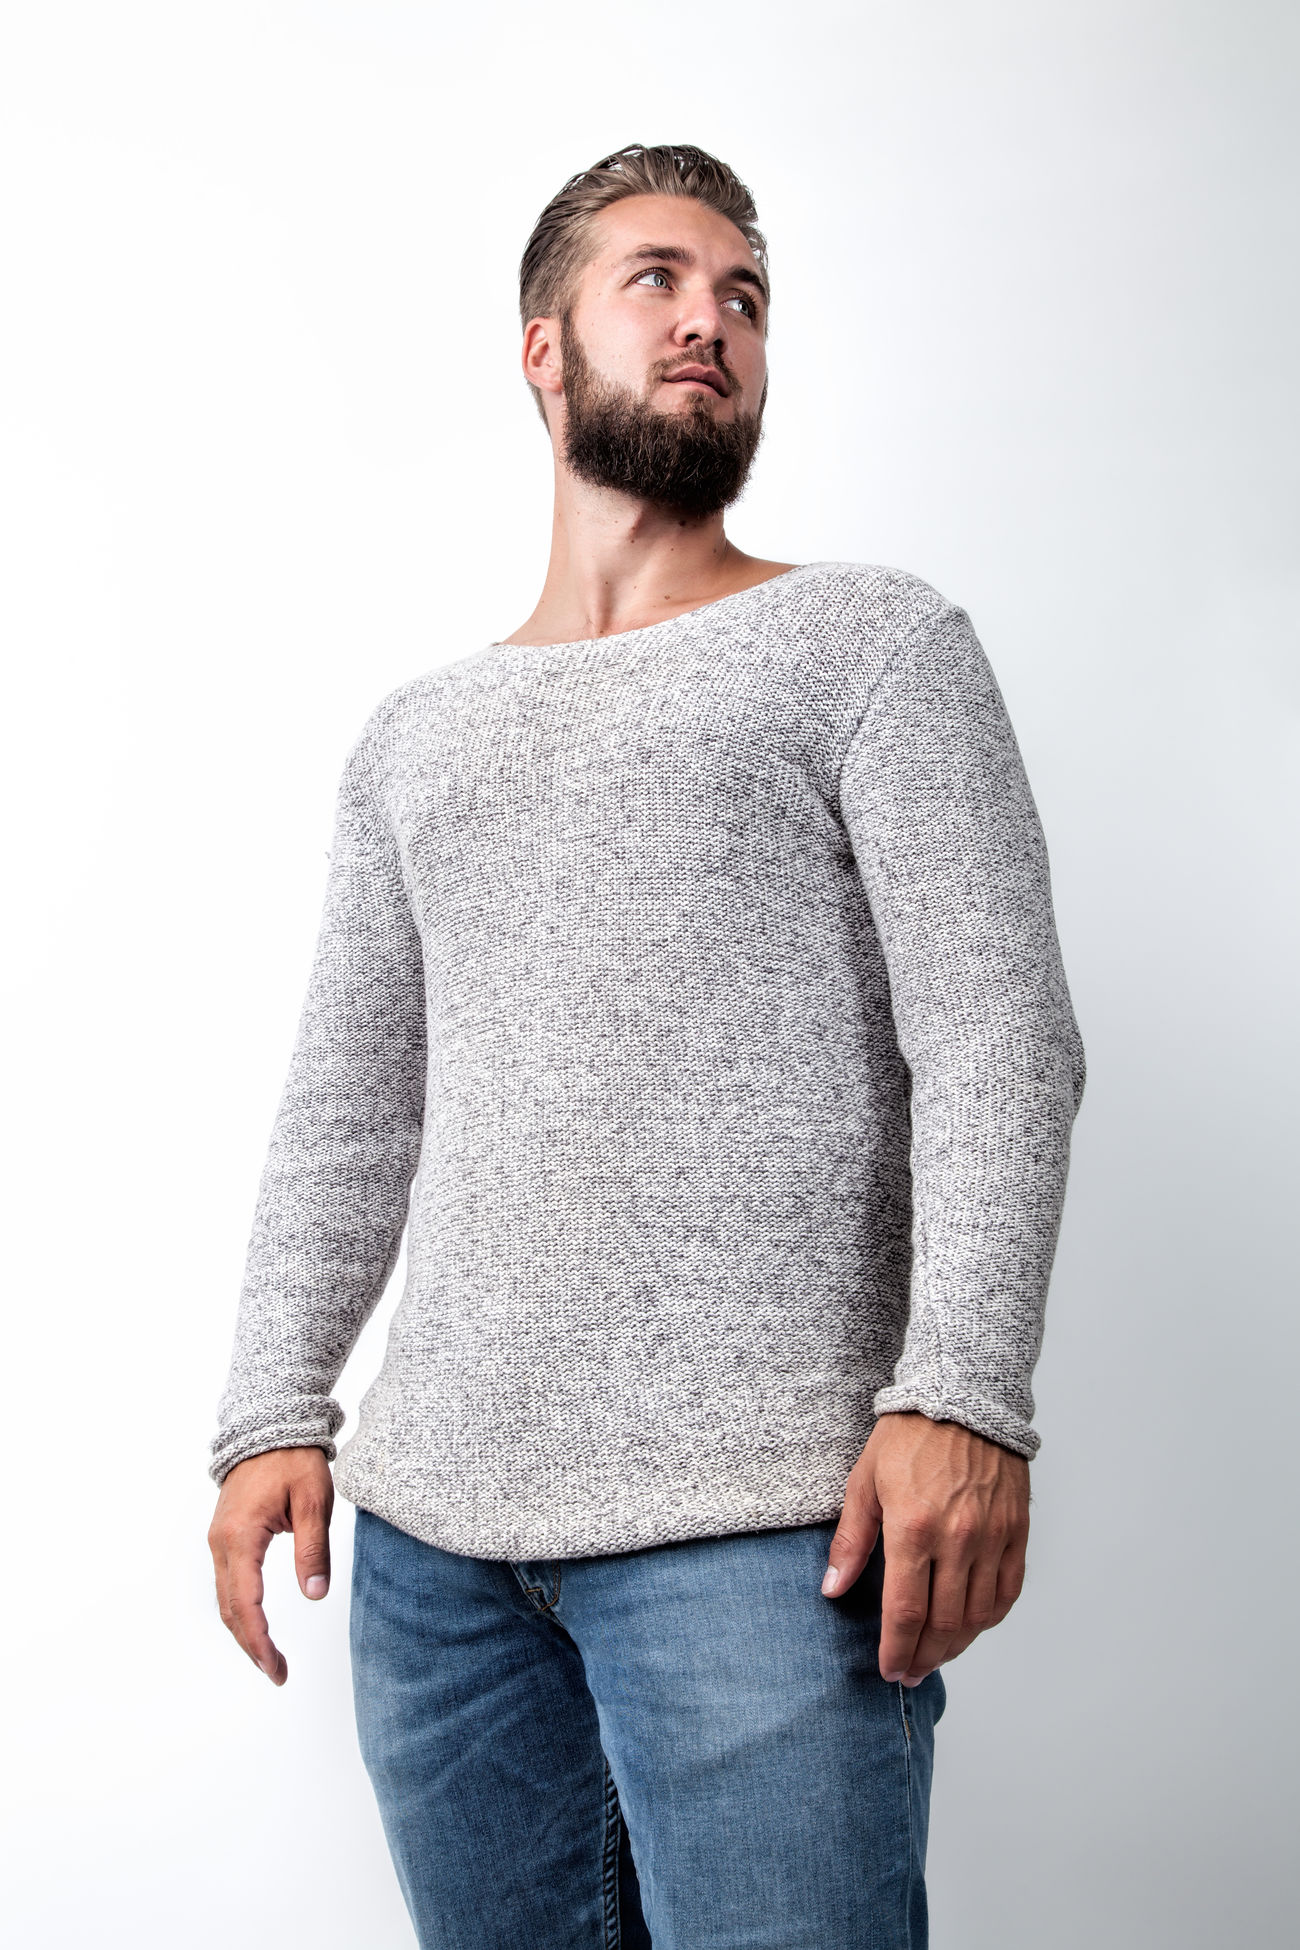 Portrait of an attractive man with a beard Attractive Background Bearded Casual Fashion Full Length Guy Handsome Happy Isolated Jeans Lifestyle Looking Man Model One People Person Portrait Pullover Sportive Standing Studio View White